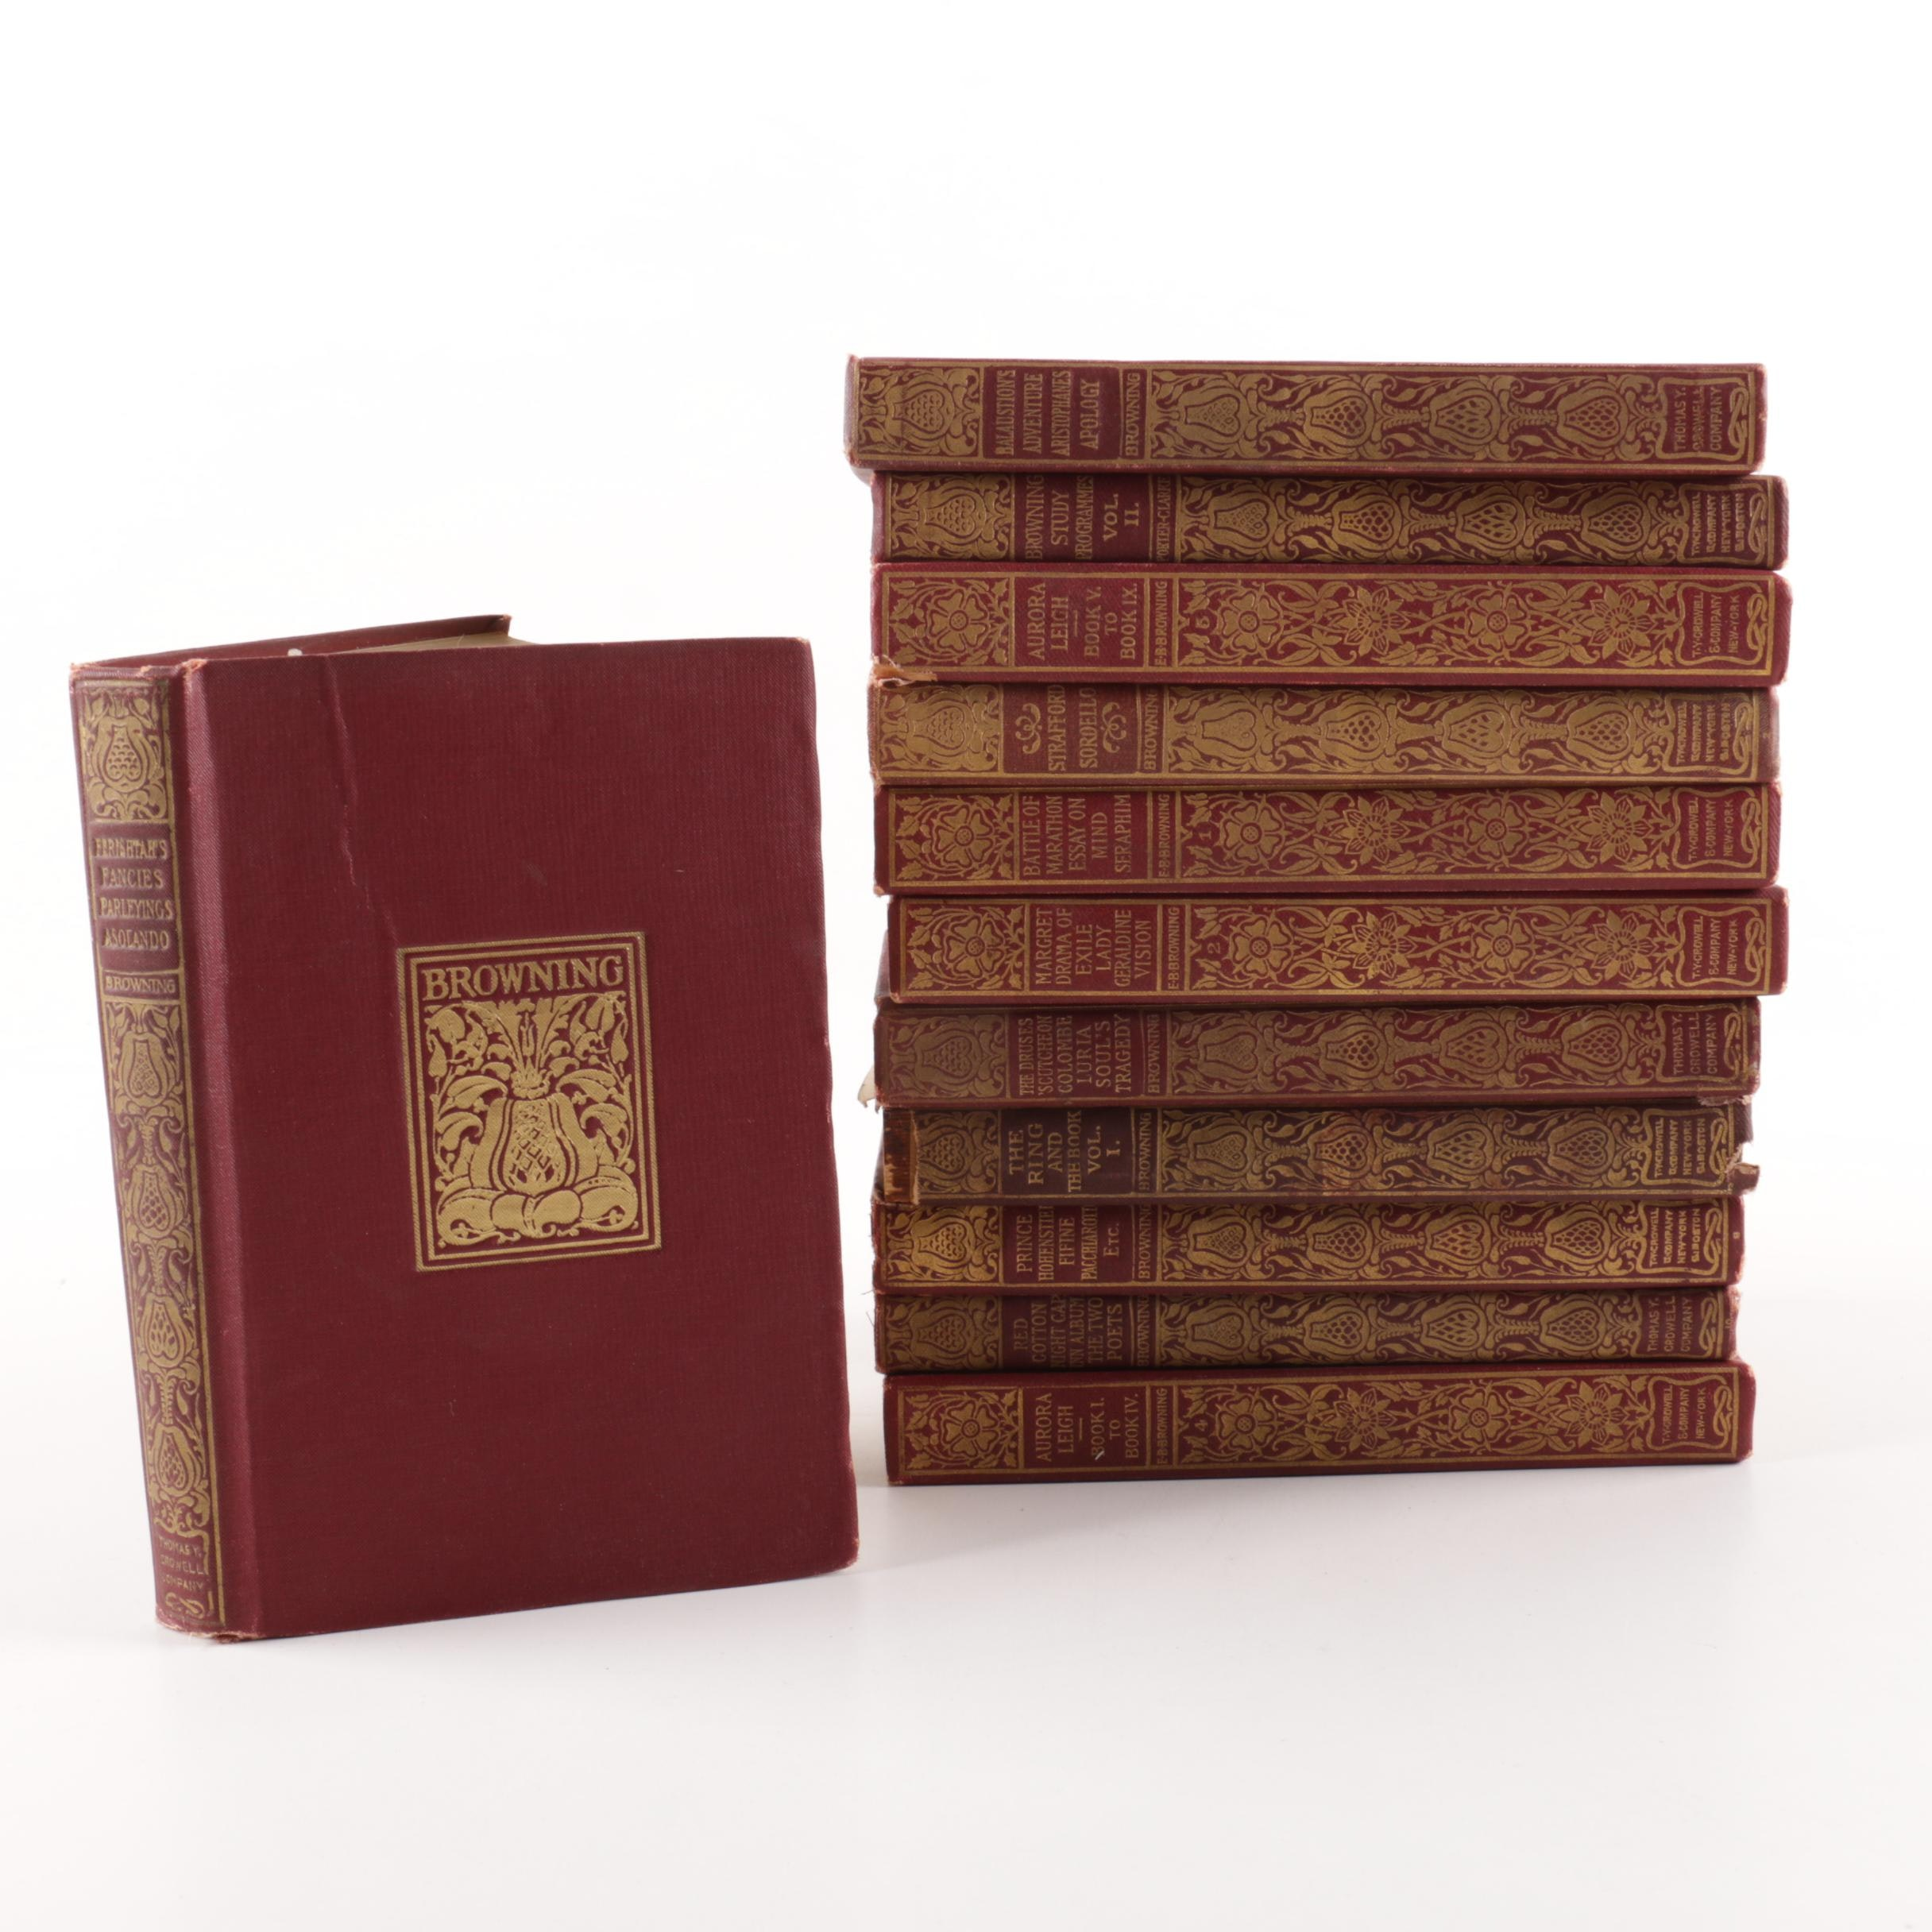 Collection of Antique Books by Robert Browning